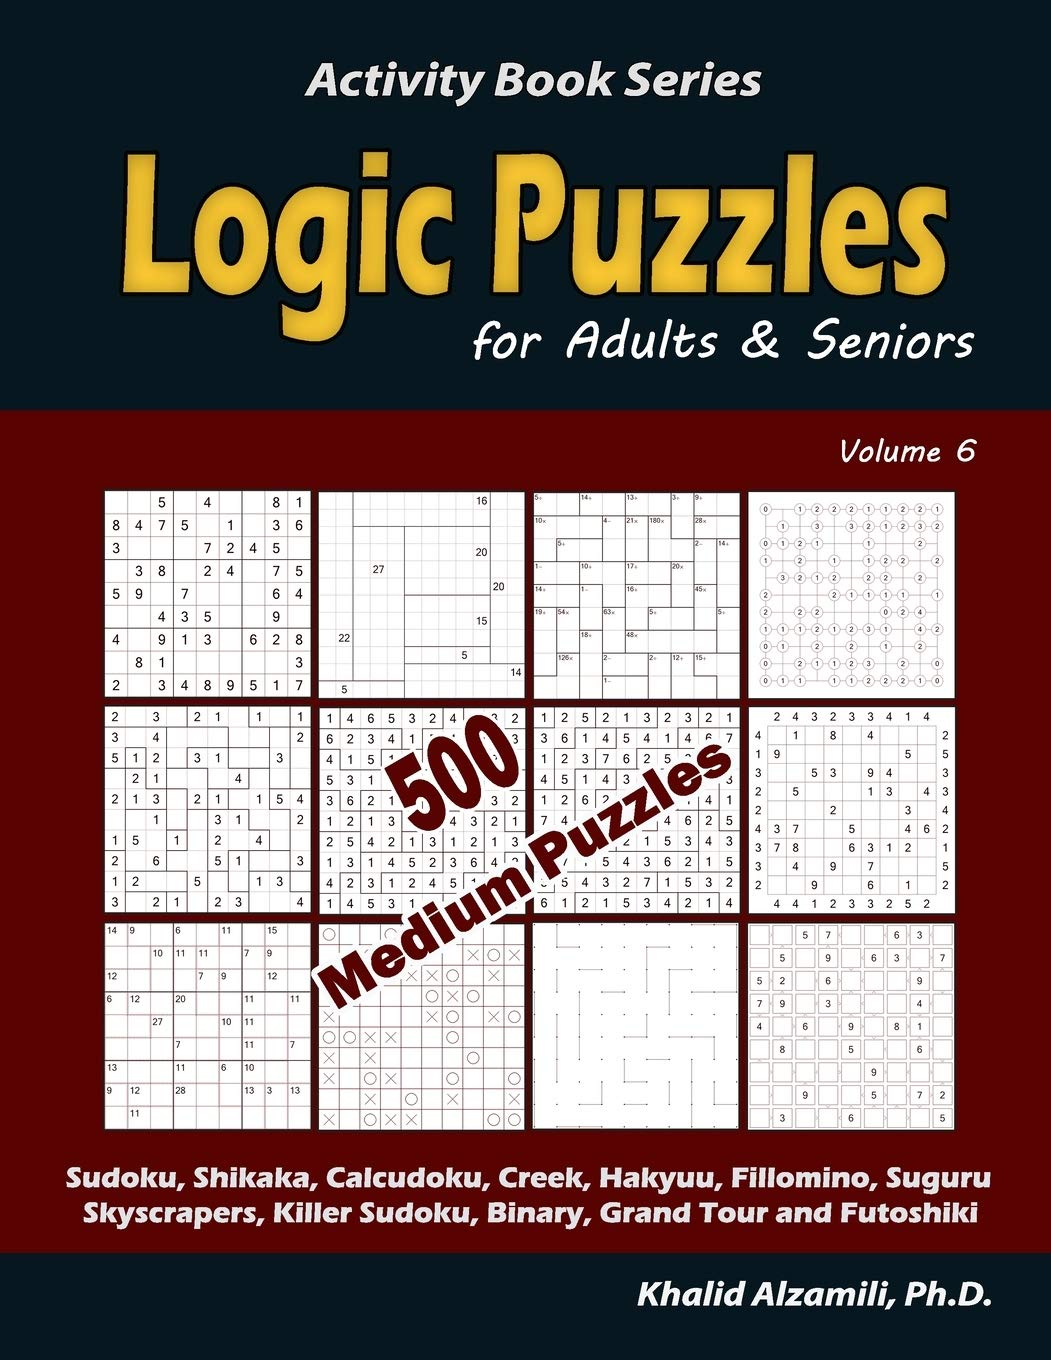 Logic Puzzles for Adults & Seniors: 500 Medium Puzzles (Sudoku, Shikaka, Calcudoku, Creek, Hakyuu, Fillomino, Suguru, Skyscrapers, Killer Sudoku, ... Tour and Futoshiki) (Activity Book Series)